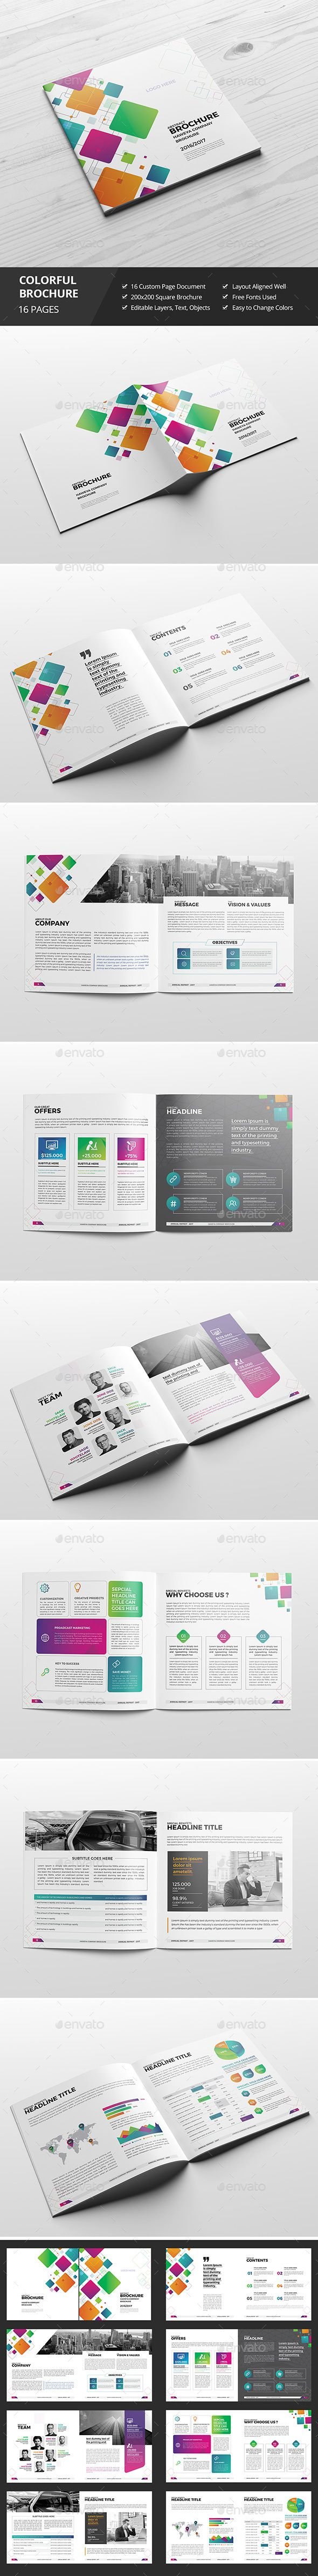 Haweya Colorful Square Brochure 03  — InDesign Template #design #marketing • Download ➝ https://graphicriver.net/item/haweya-colorful-square-brochure-03/18647156?ref=pxcr